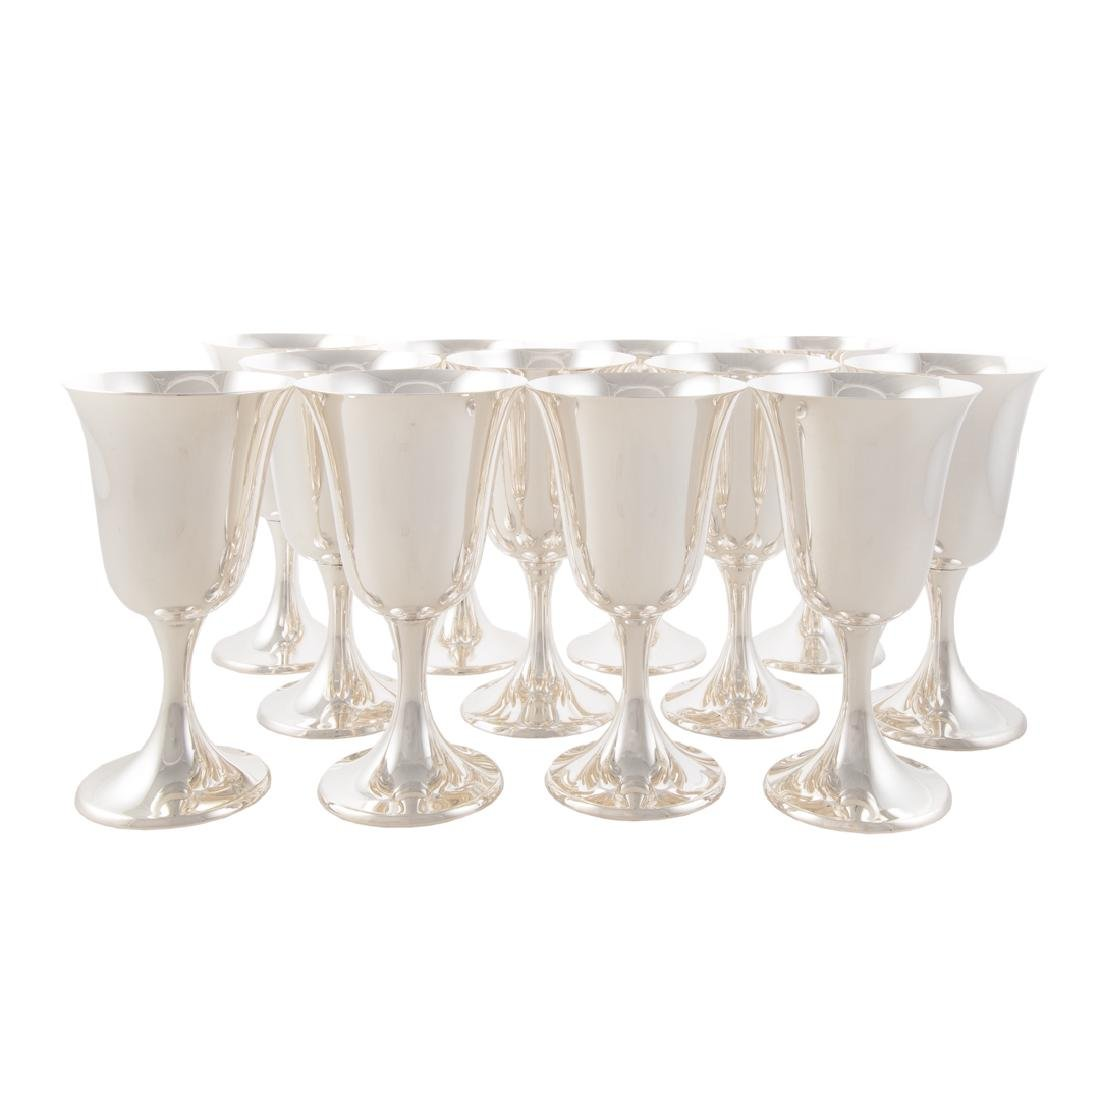 Set of 12 sterling water goblets Puritan pattern